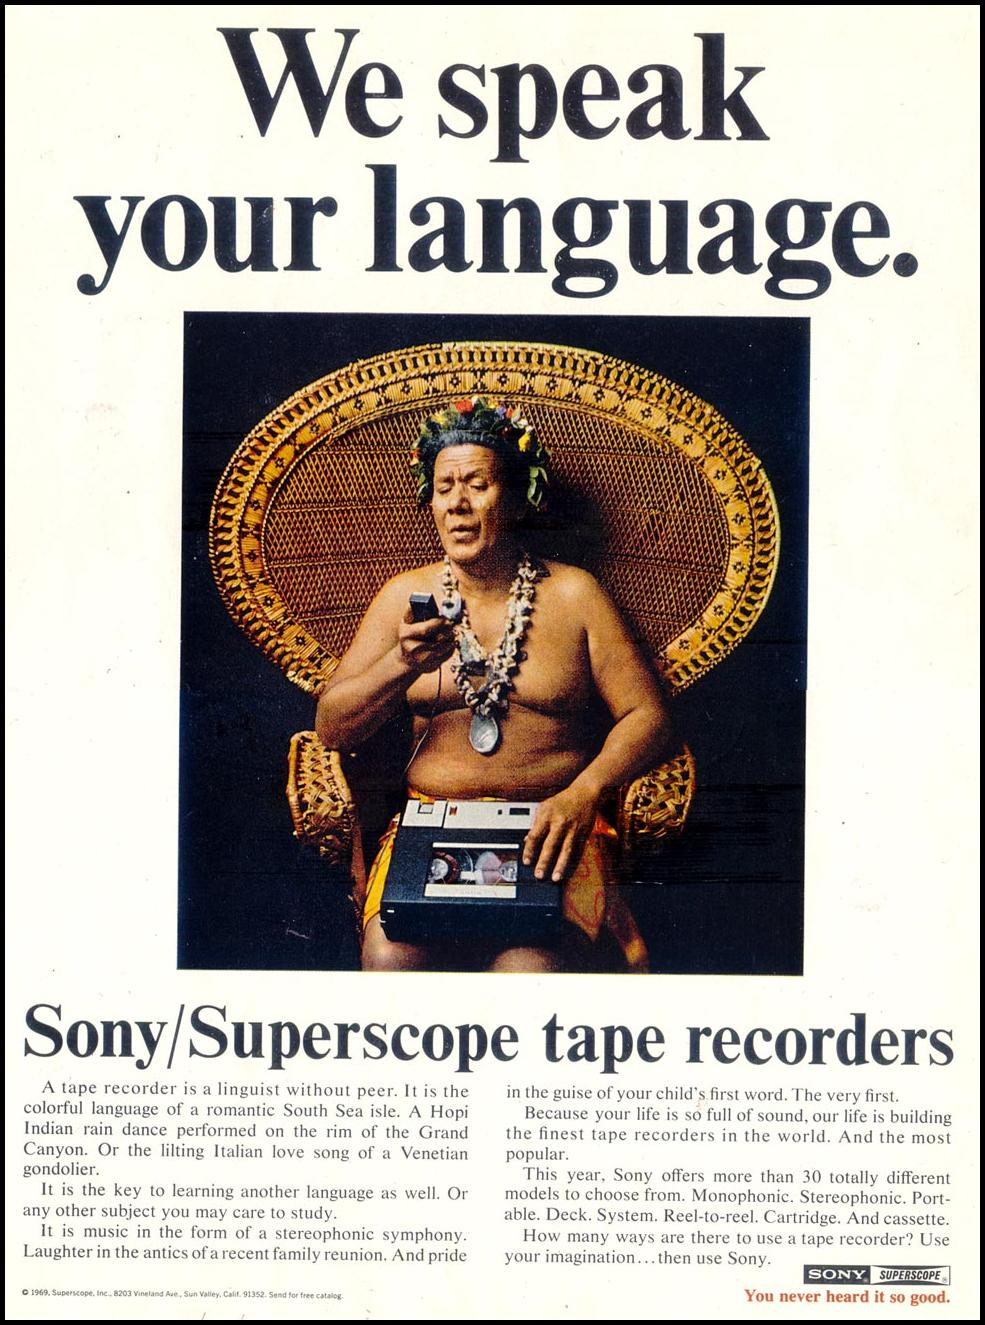 SONY SUPERSCOPE TAPE RECORDERS SATURDAY EVENING POST 01/25/1969